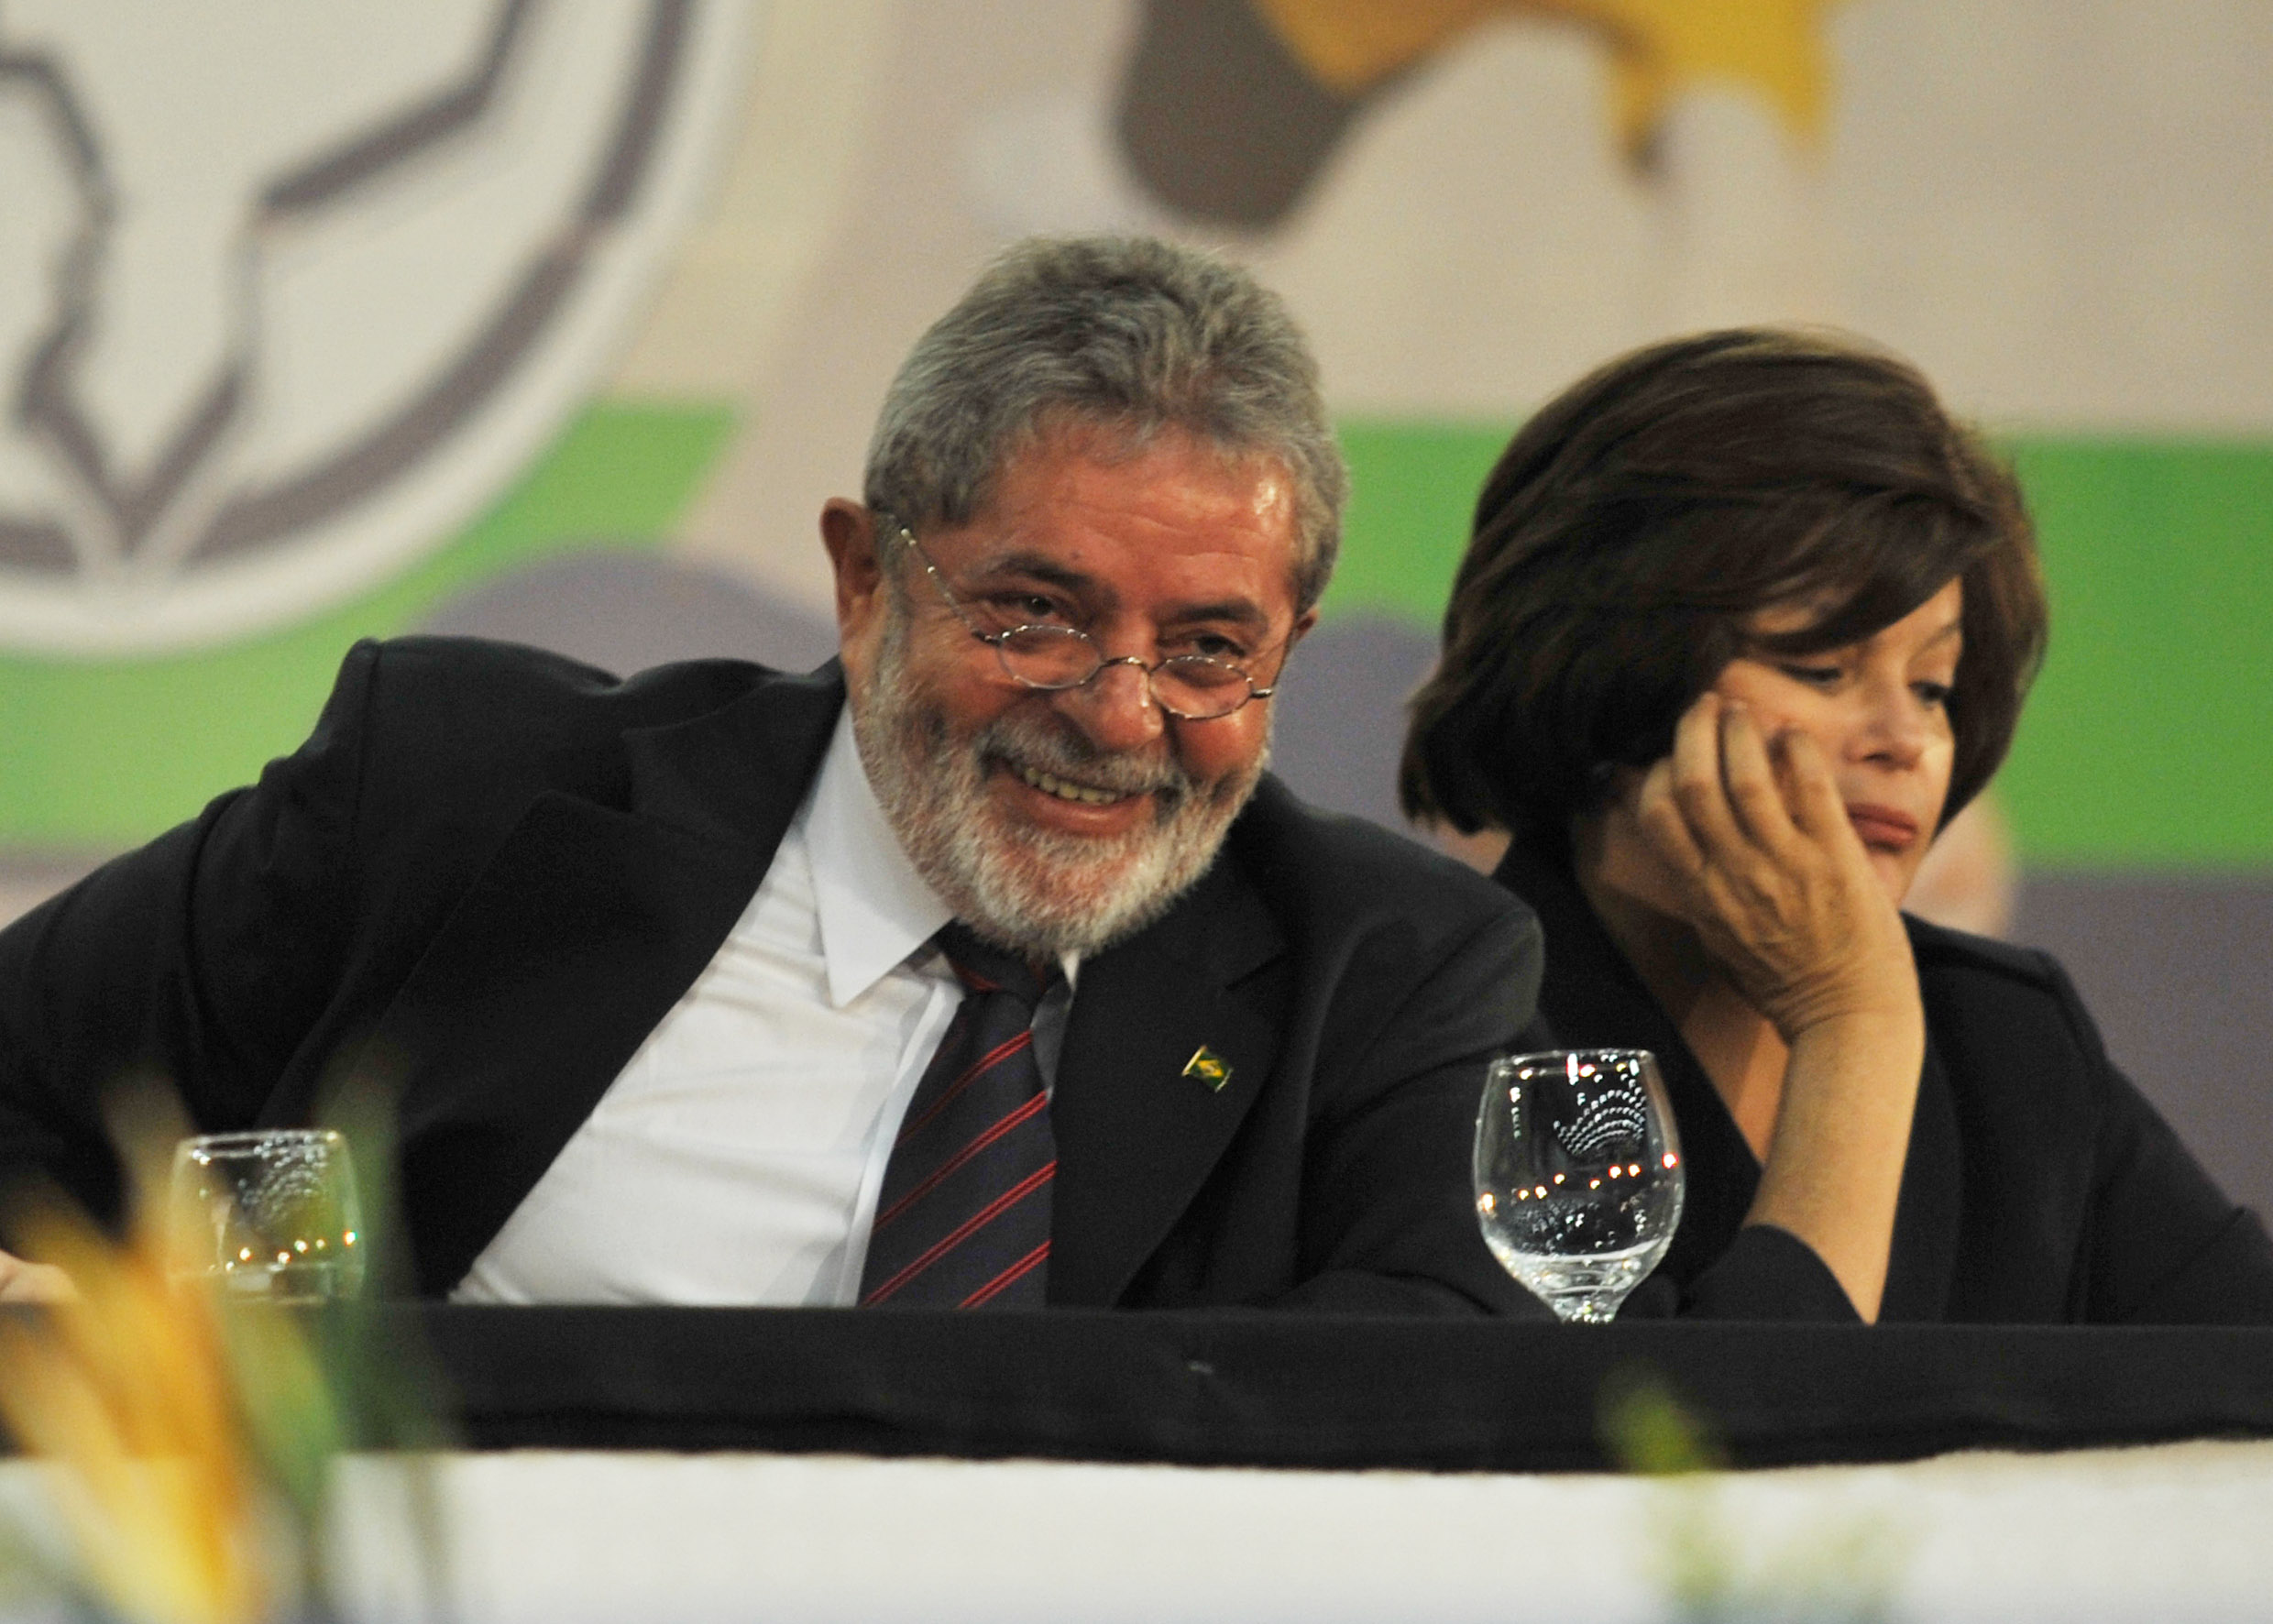 http://upload.wikimedia.org/wikipedia/commons/5/5d/Lula_Dilma_Conune_2009.jpg